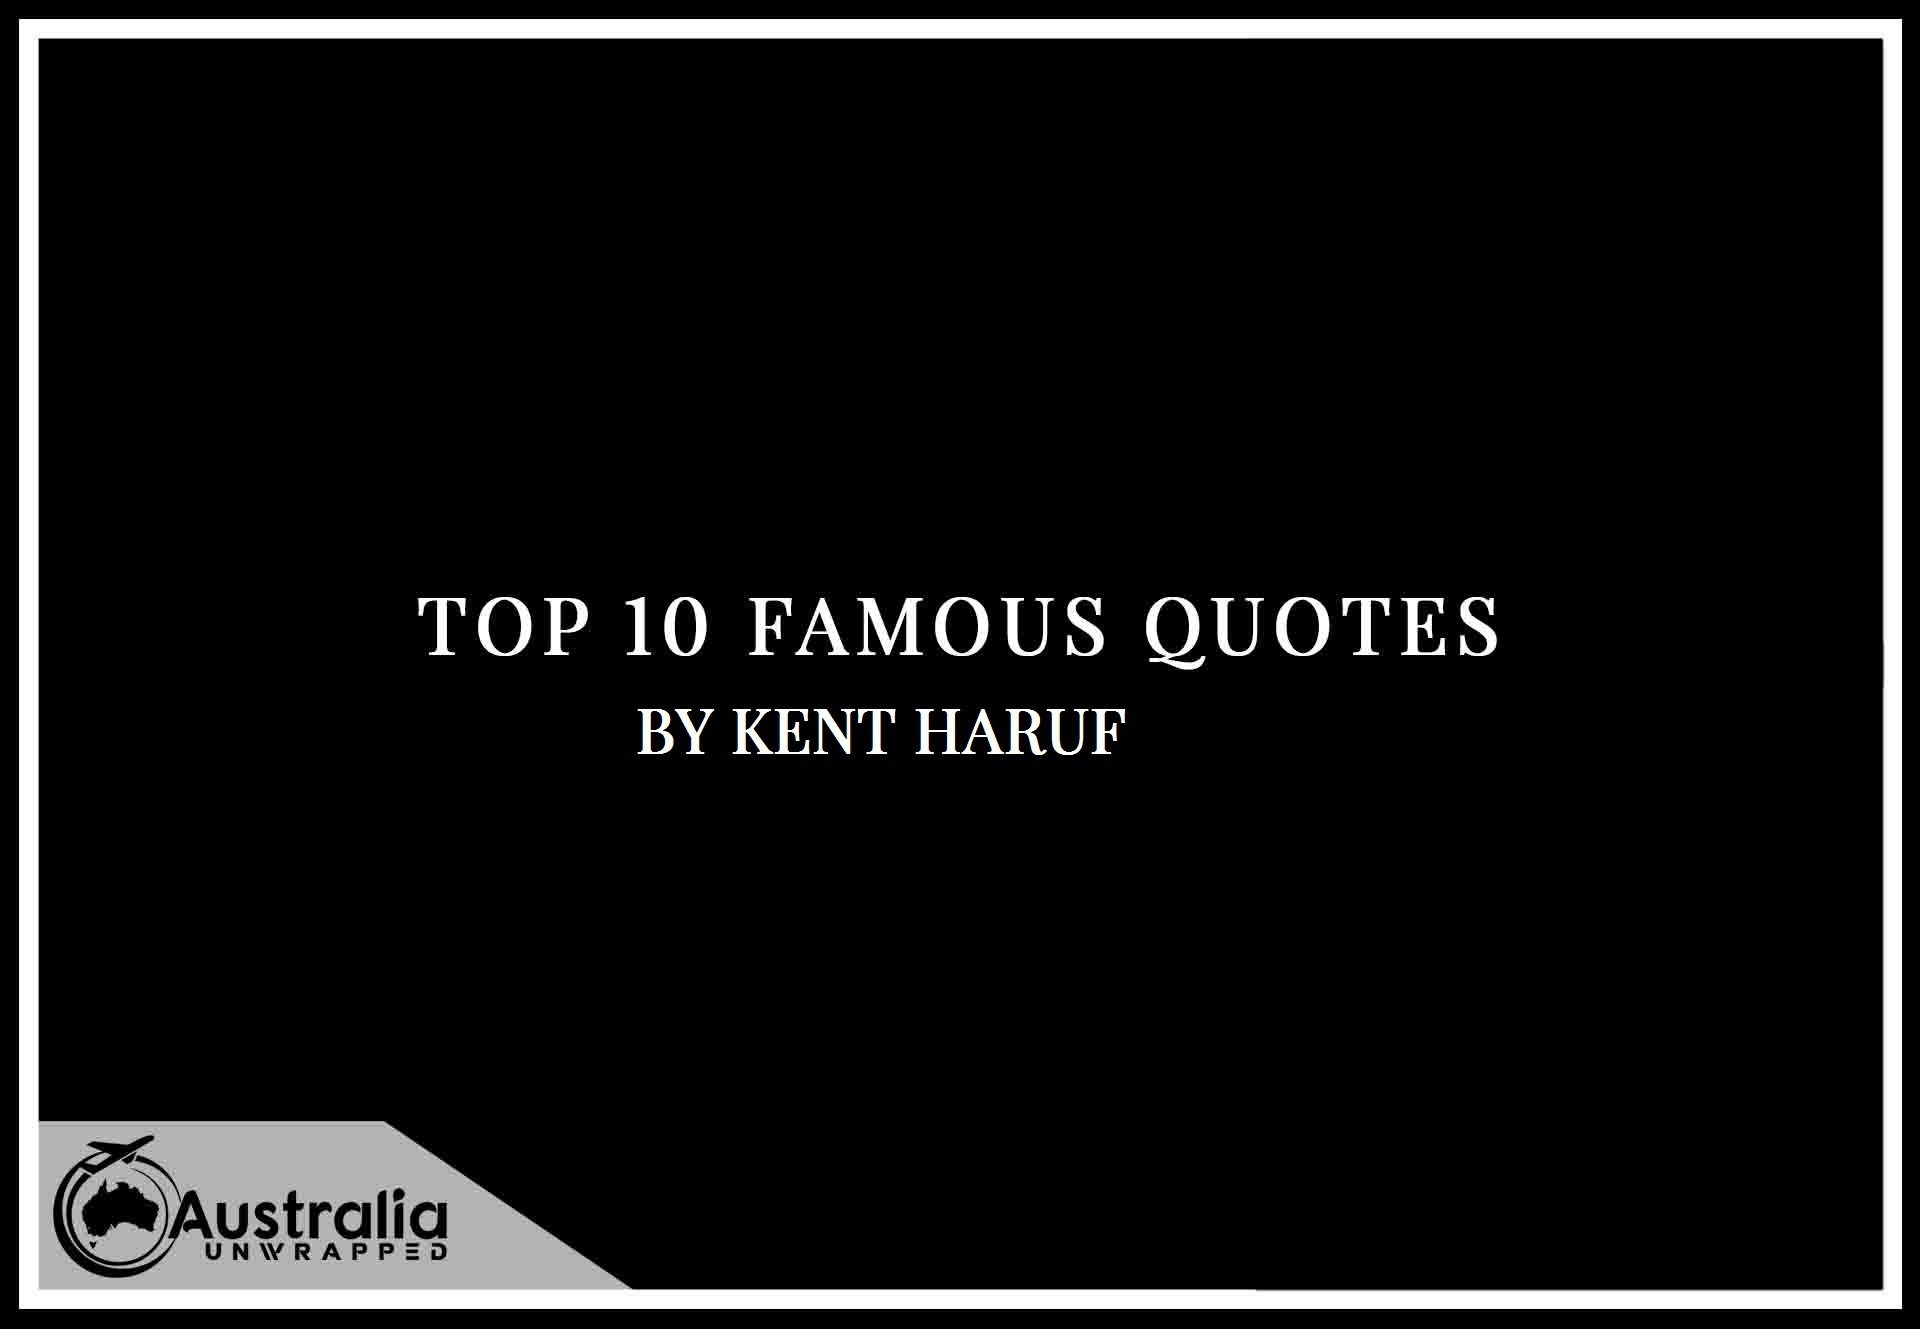 Kent Haruf's Top 10 Popular and Famous Quotes